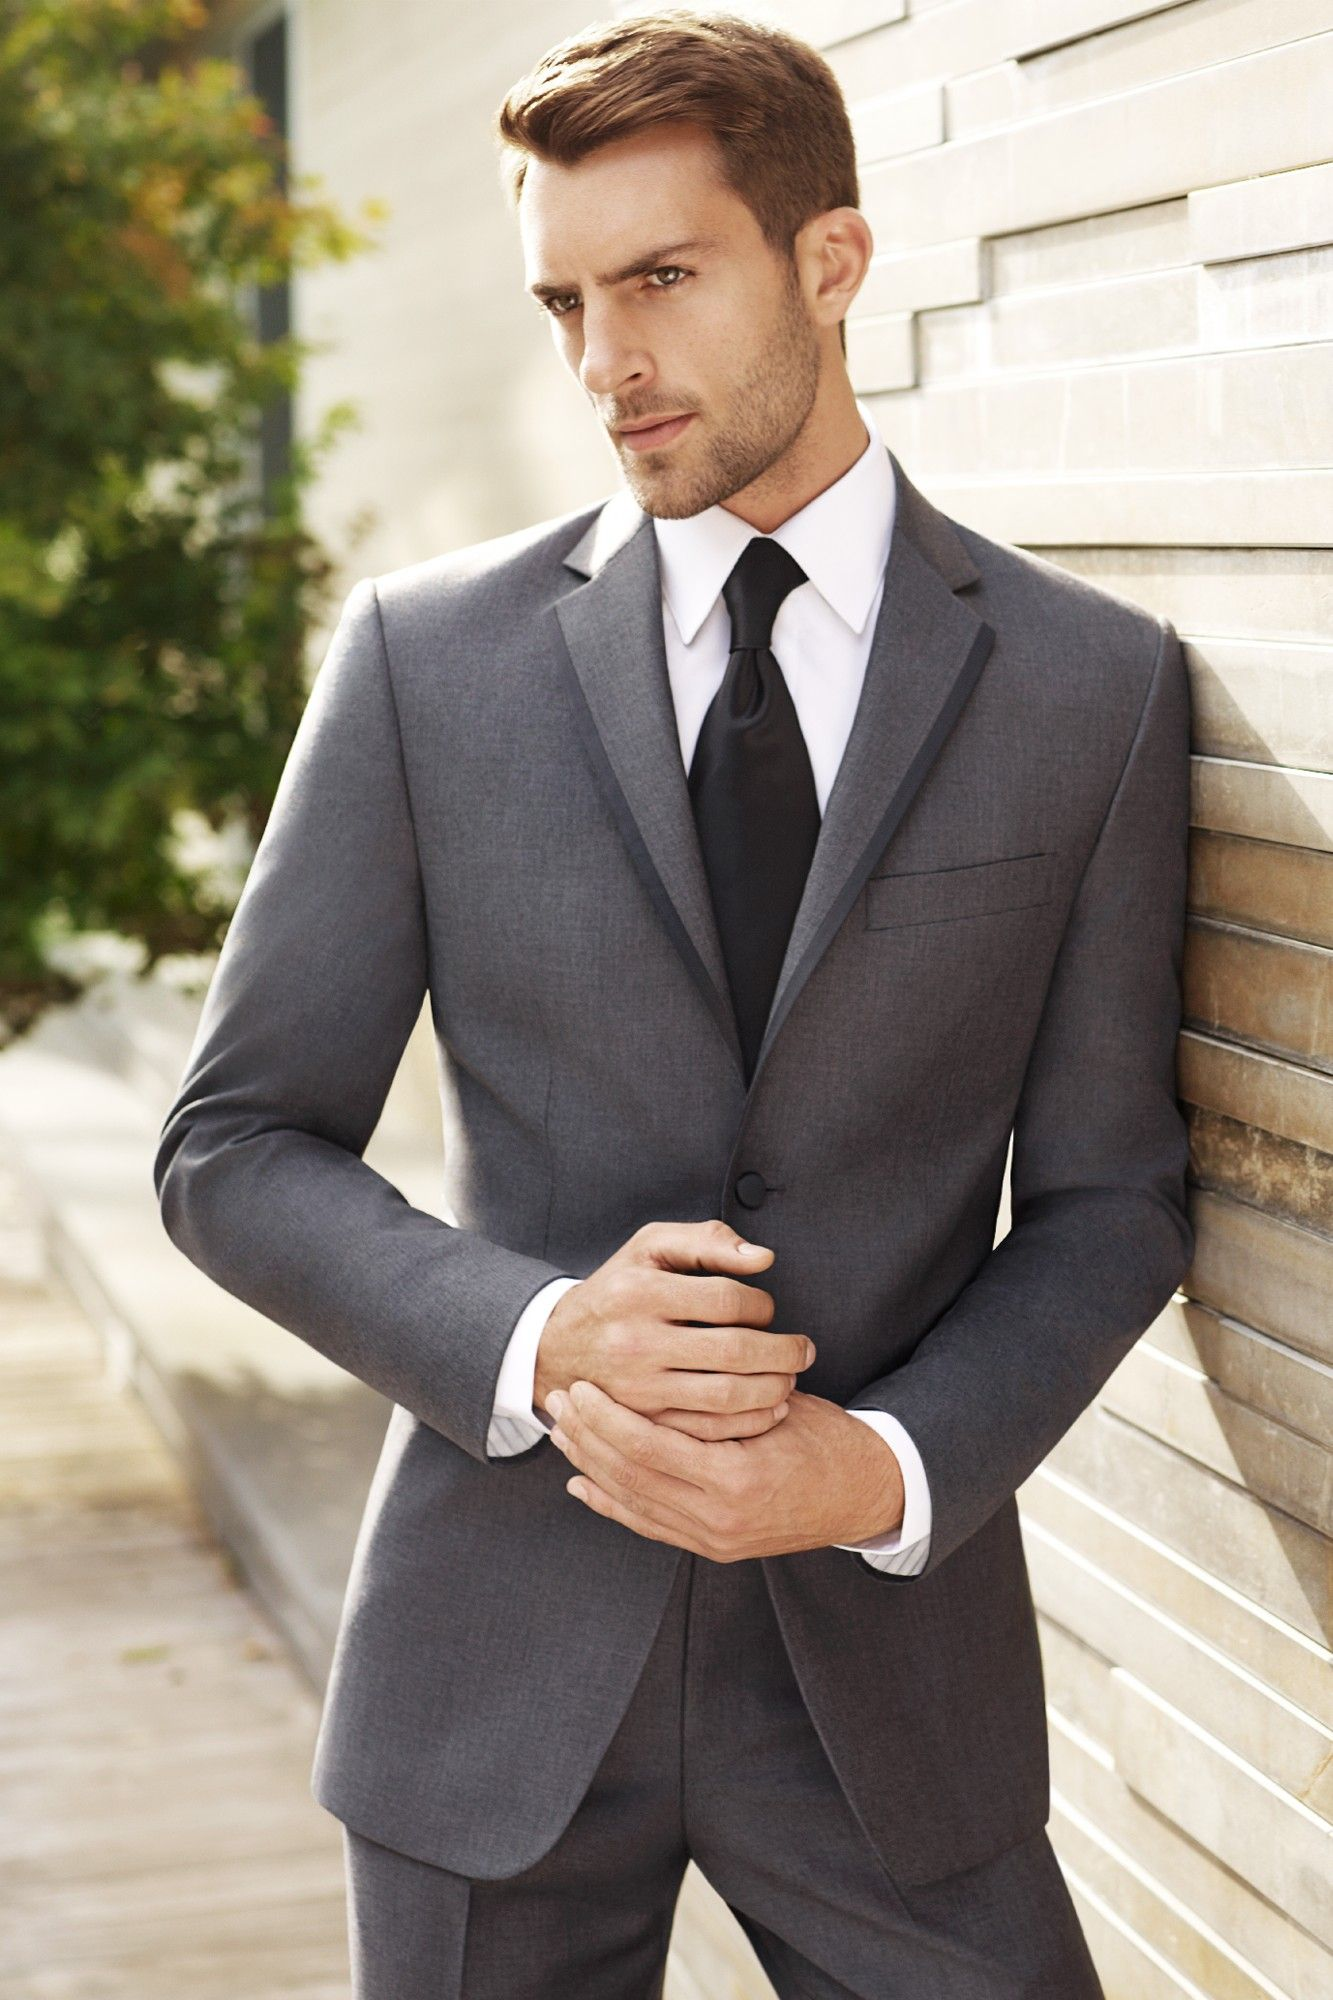 Love the dark grey suit and black tie | Bridesmaids: Part Deux ...